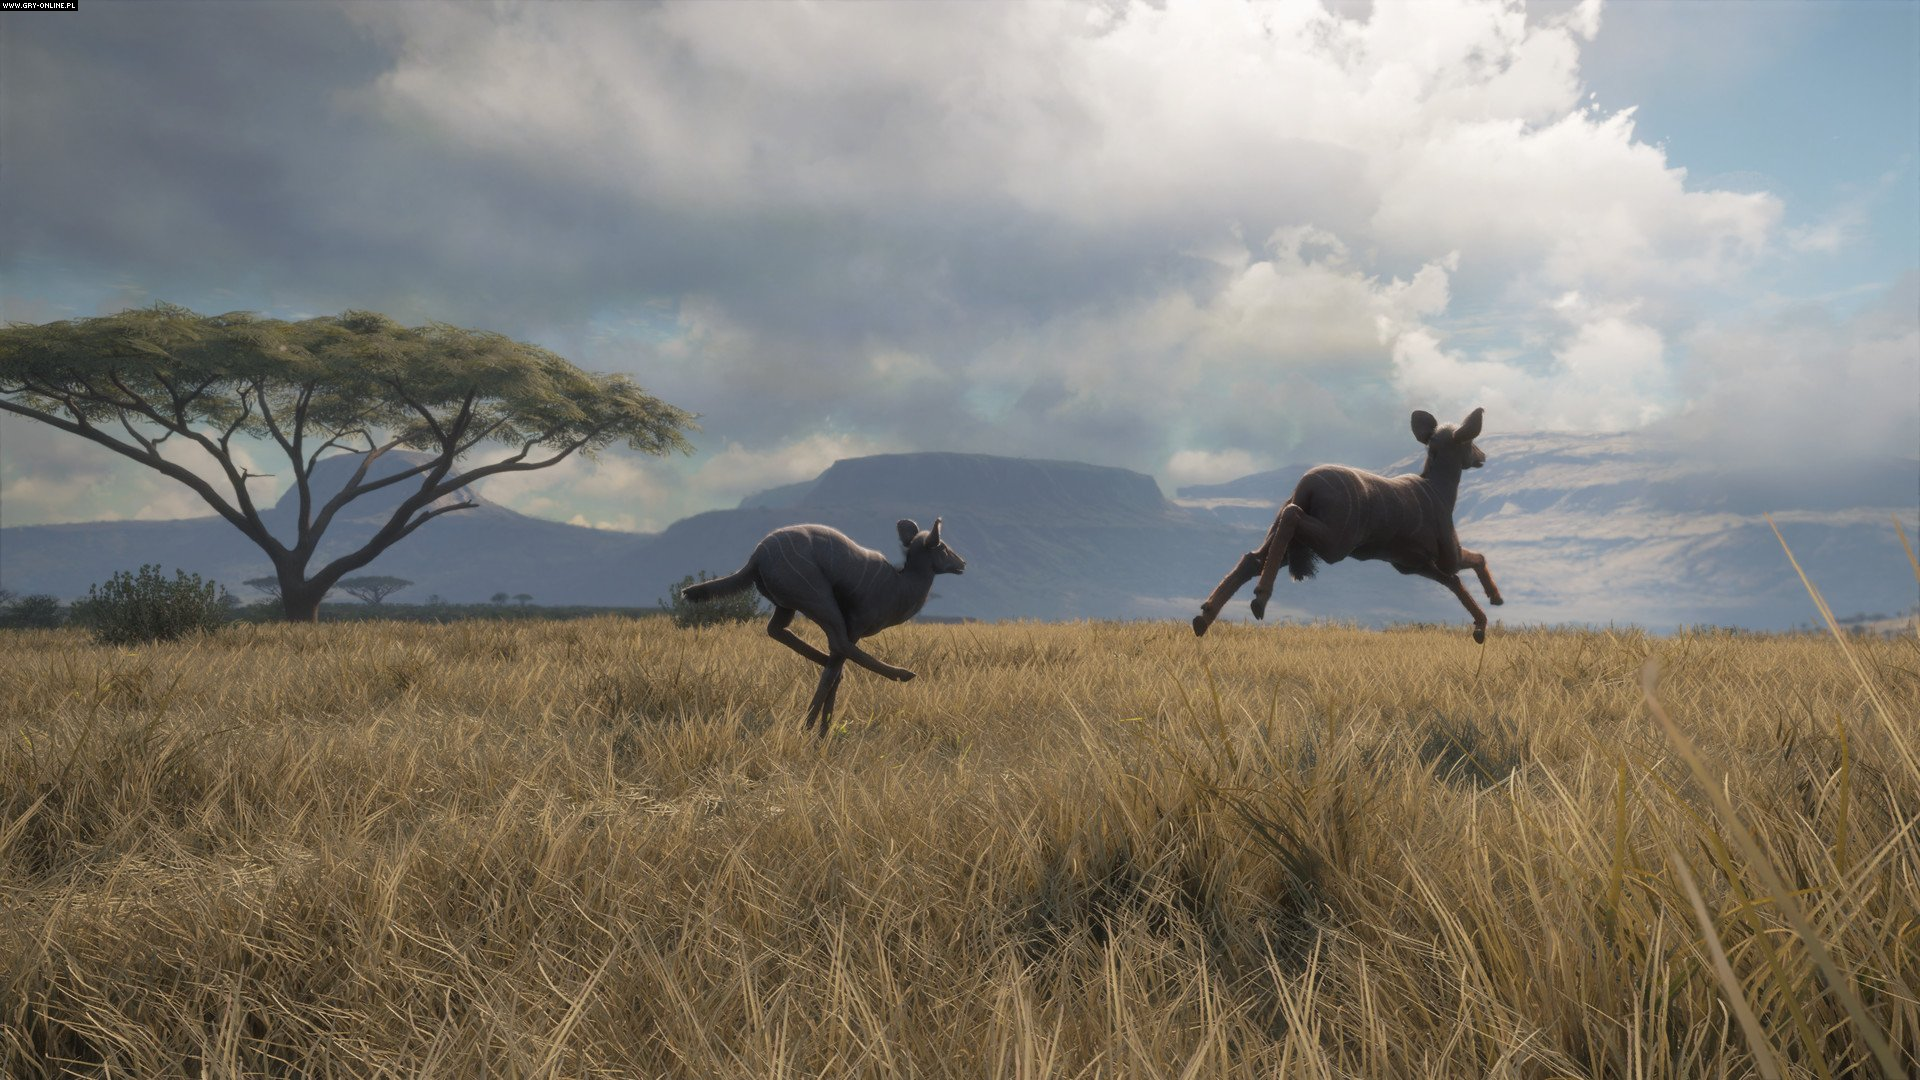 theHunter: Call of the Wild PC, PS4, XONE Gry Screen 4/79, Expansive Worlds, Avalanche Studios